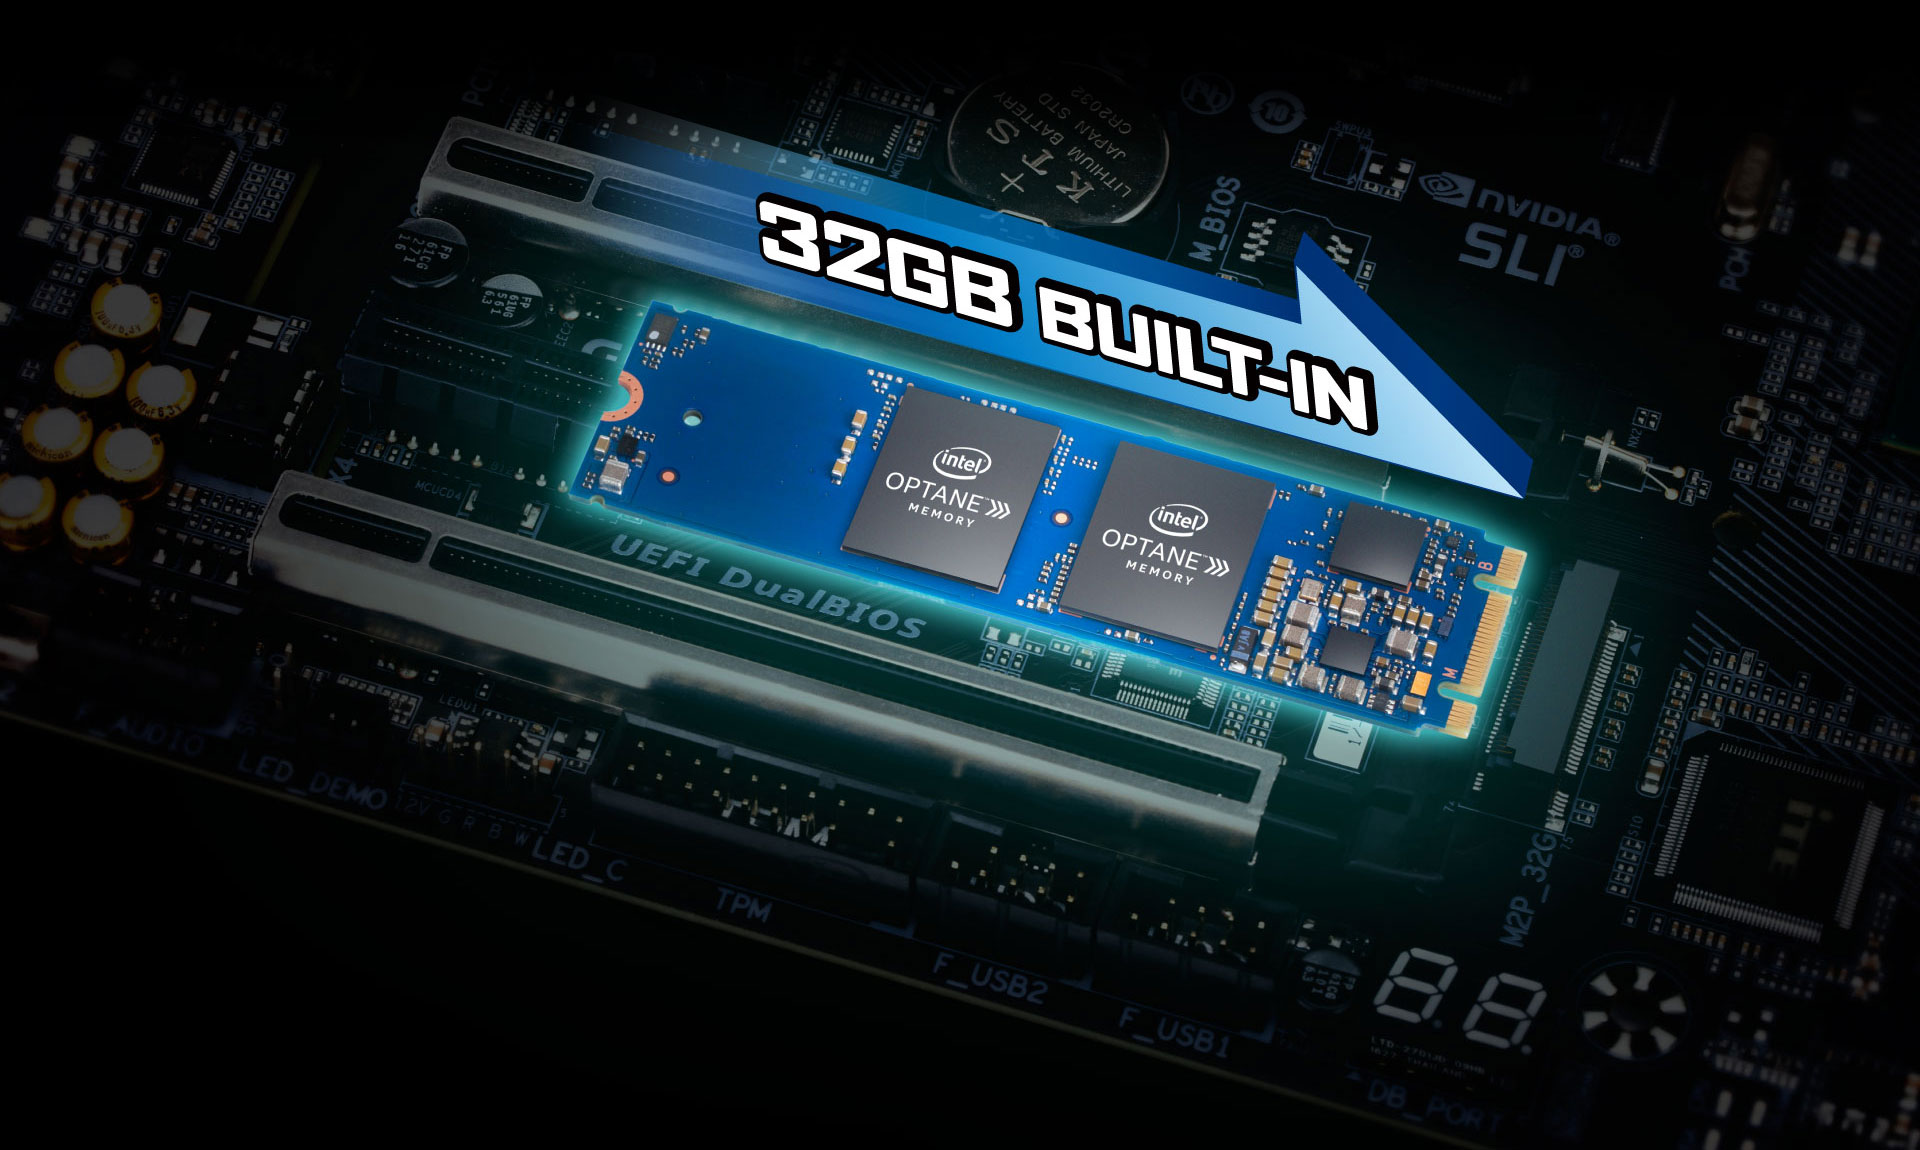 GIGABYTE Motherboards Built-in 32GB Intel Optane Memory